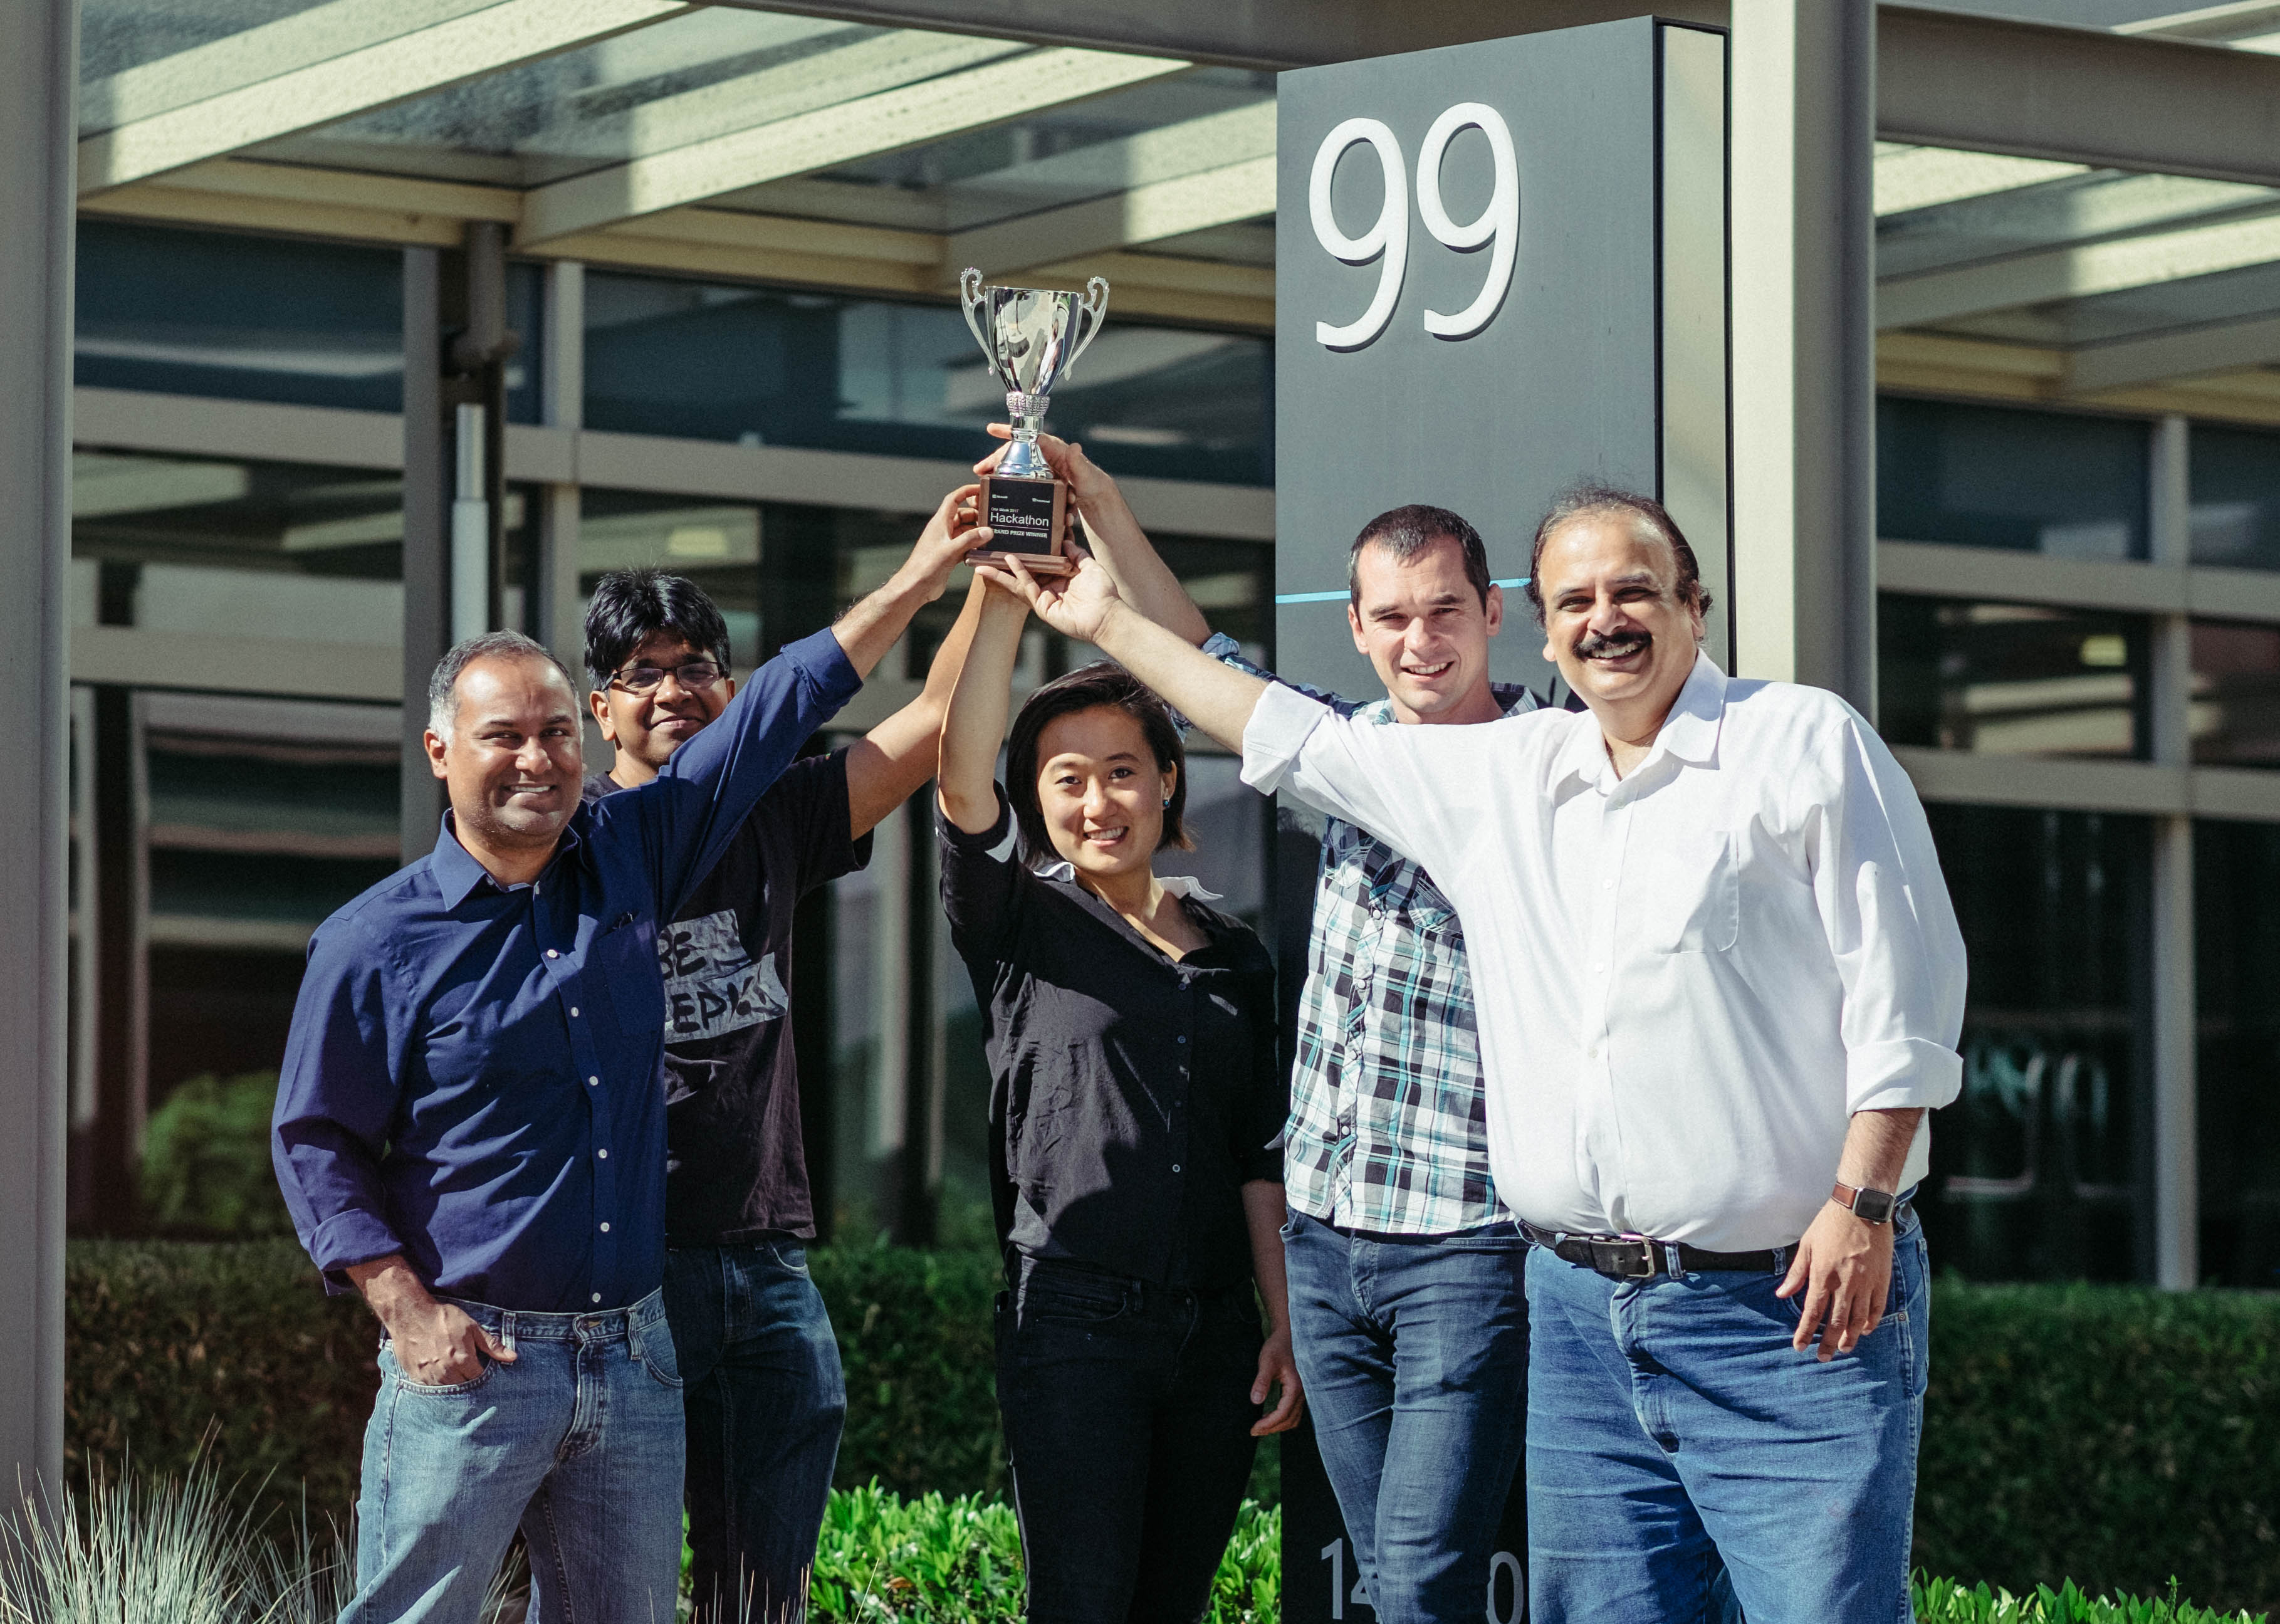 The five members of the winning Hackathon 2017 team (four men and one woman) stand in a semi-circle holding the trophy aloft.